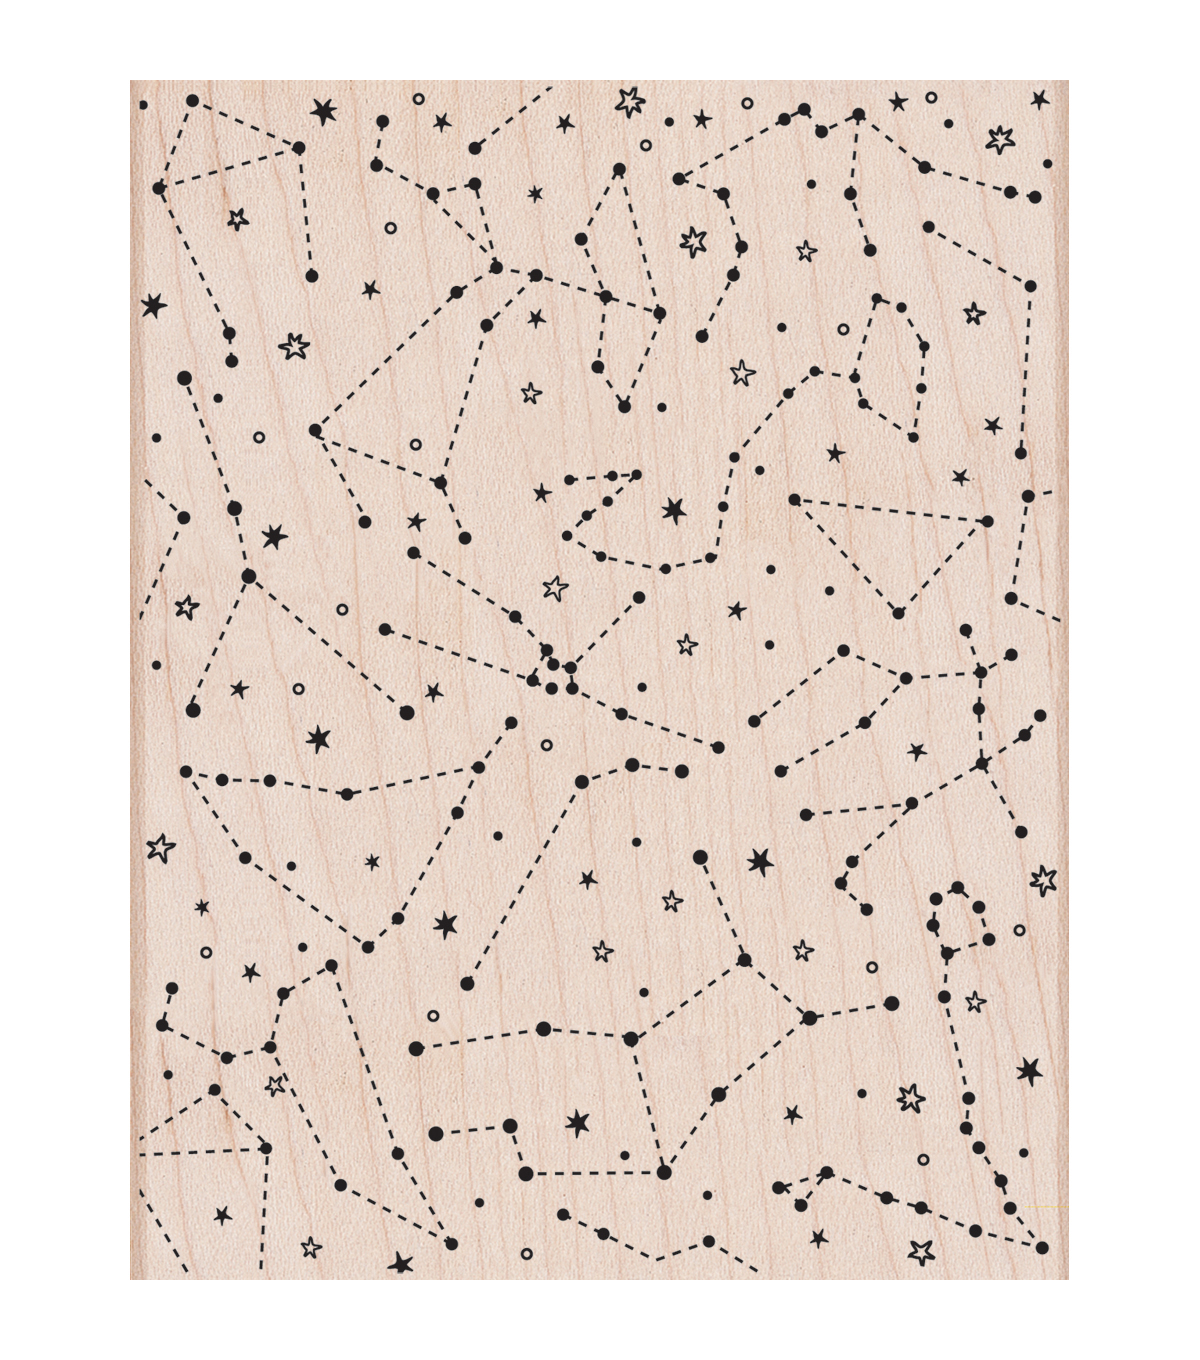 Hero Arts Mounted Rubber stamps 4.25\u0022X5.5\u0022-Constellation Background